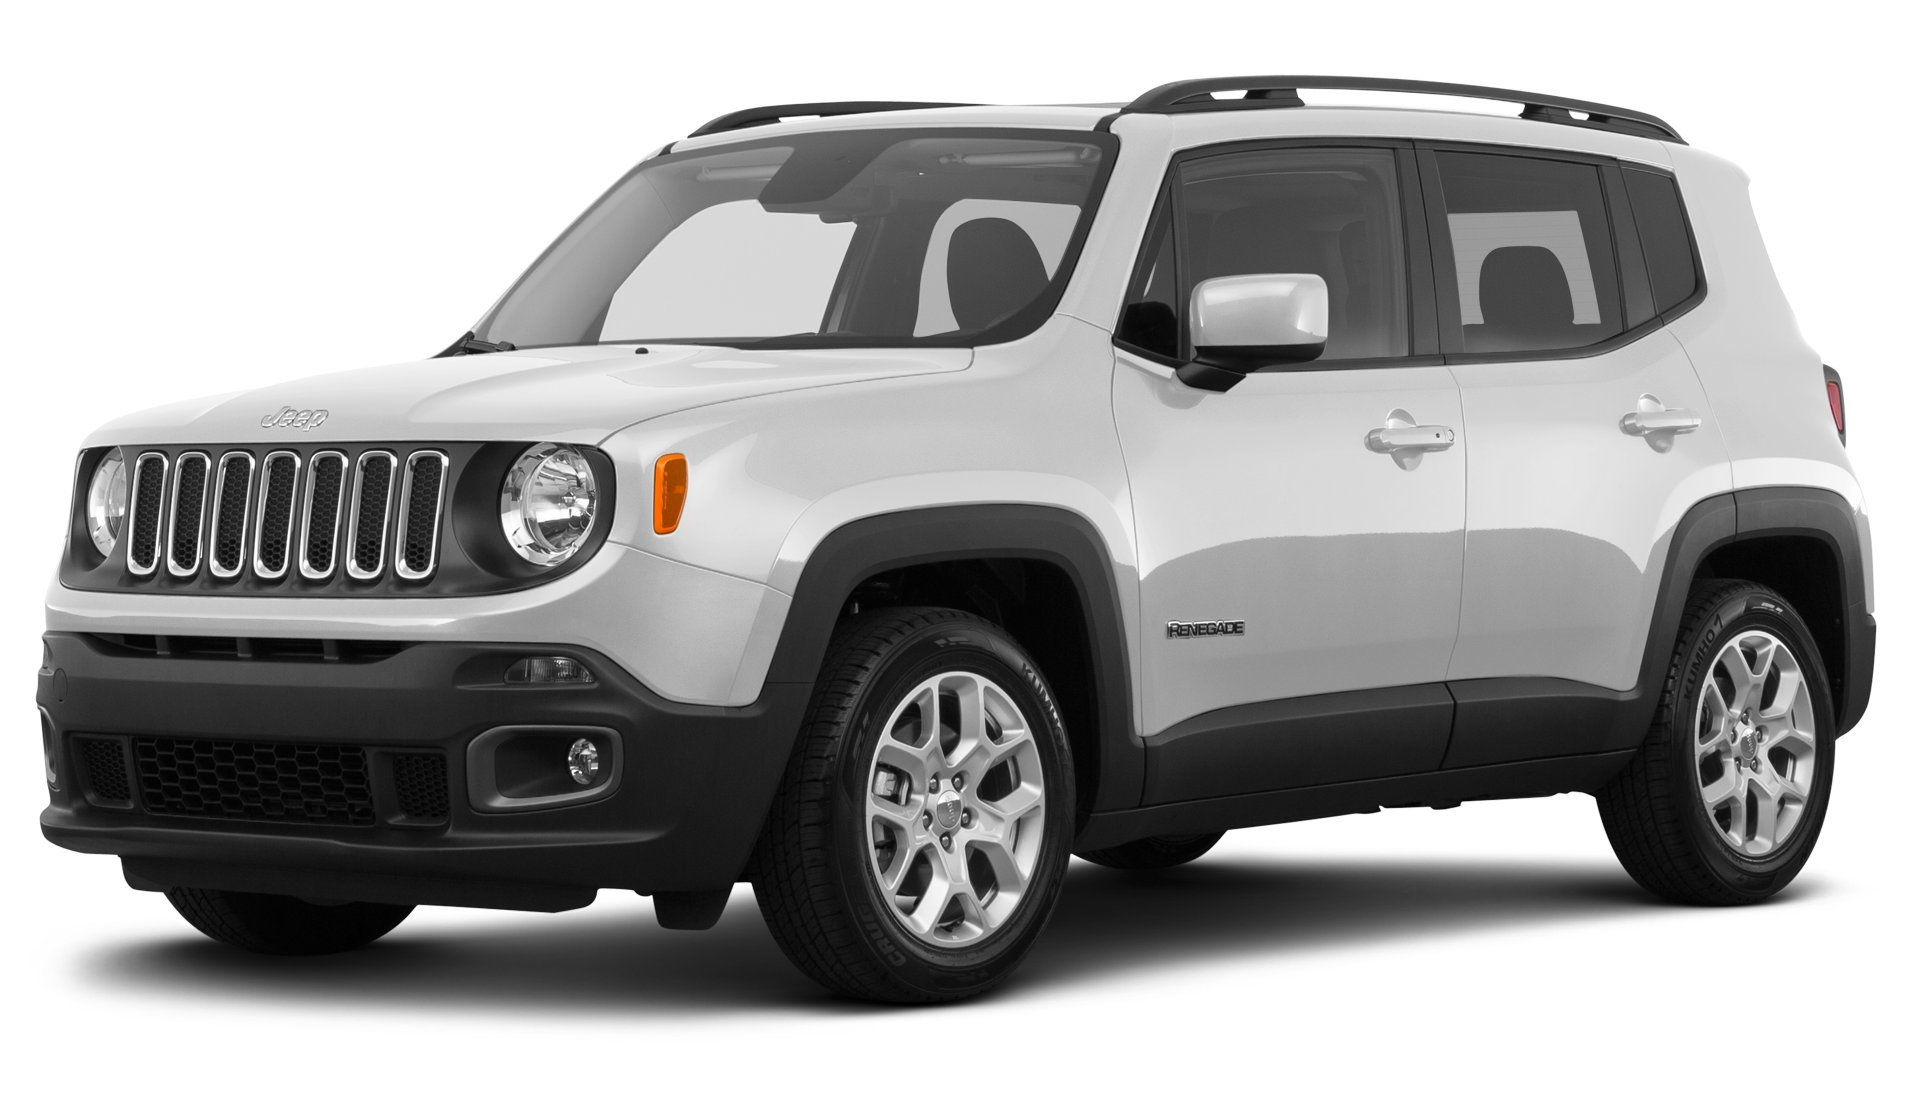 2016 jeep renegade reviews images and specs. Black Bedroom Furniture Sets. Home Design Ideas